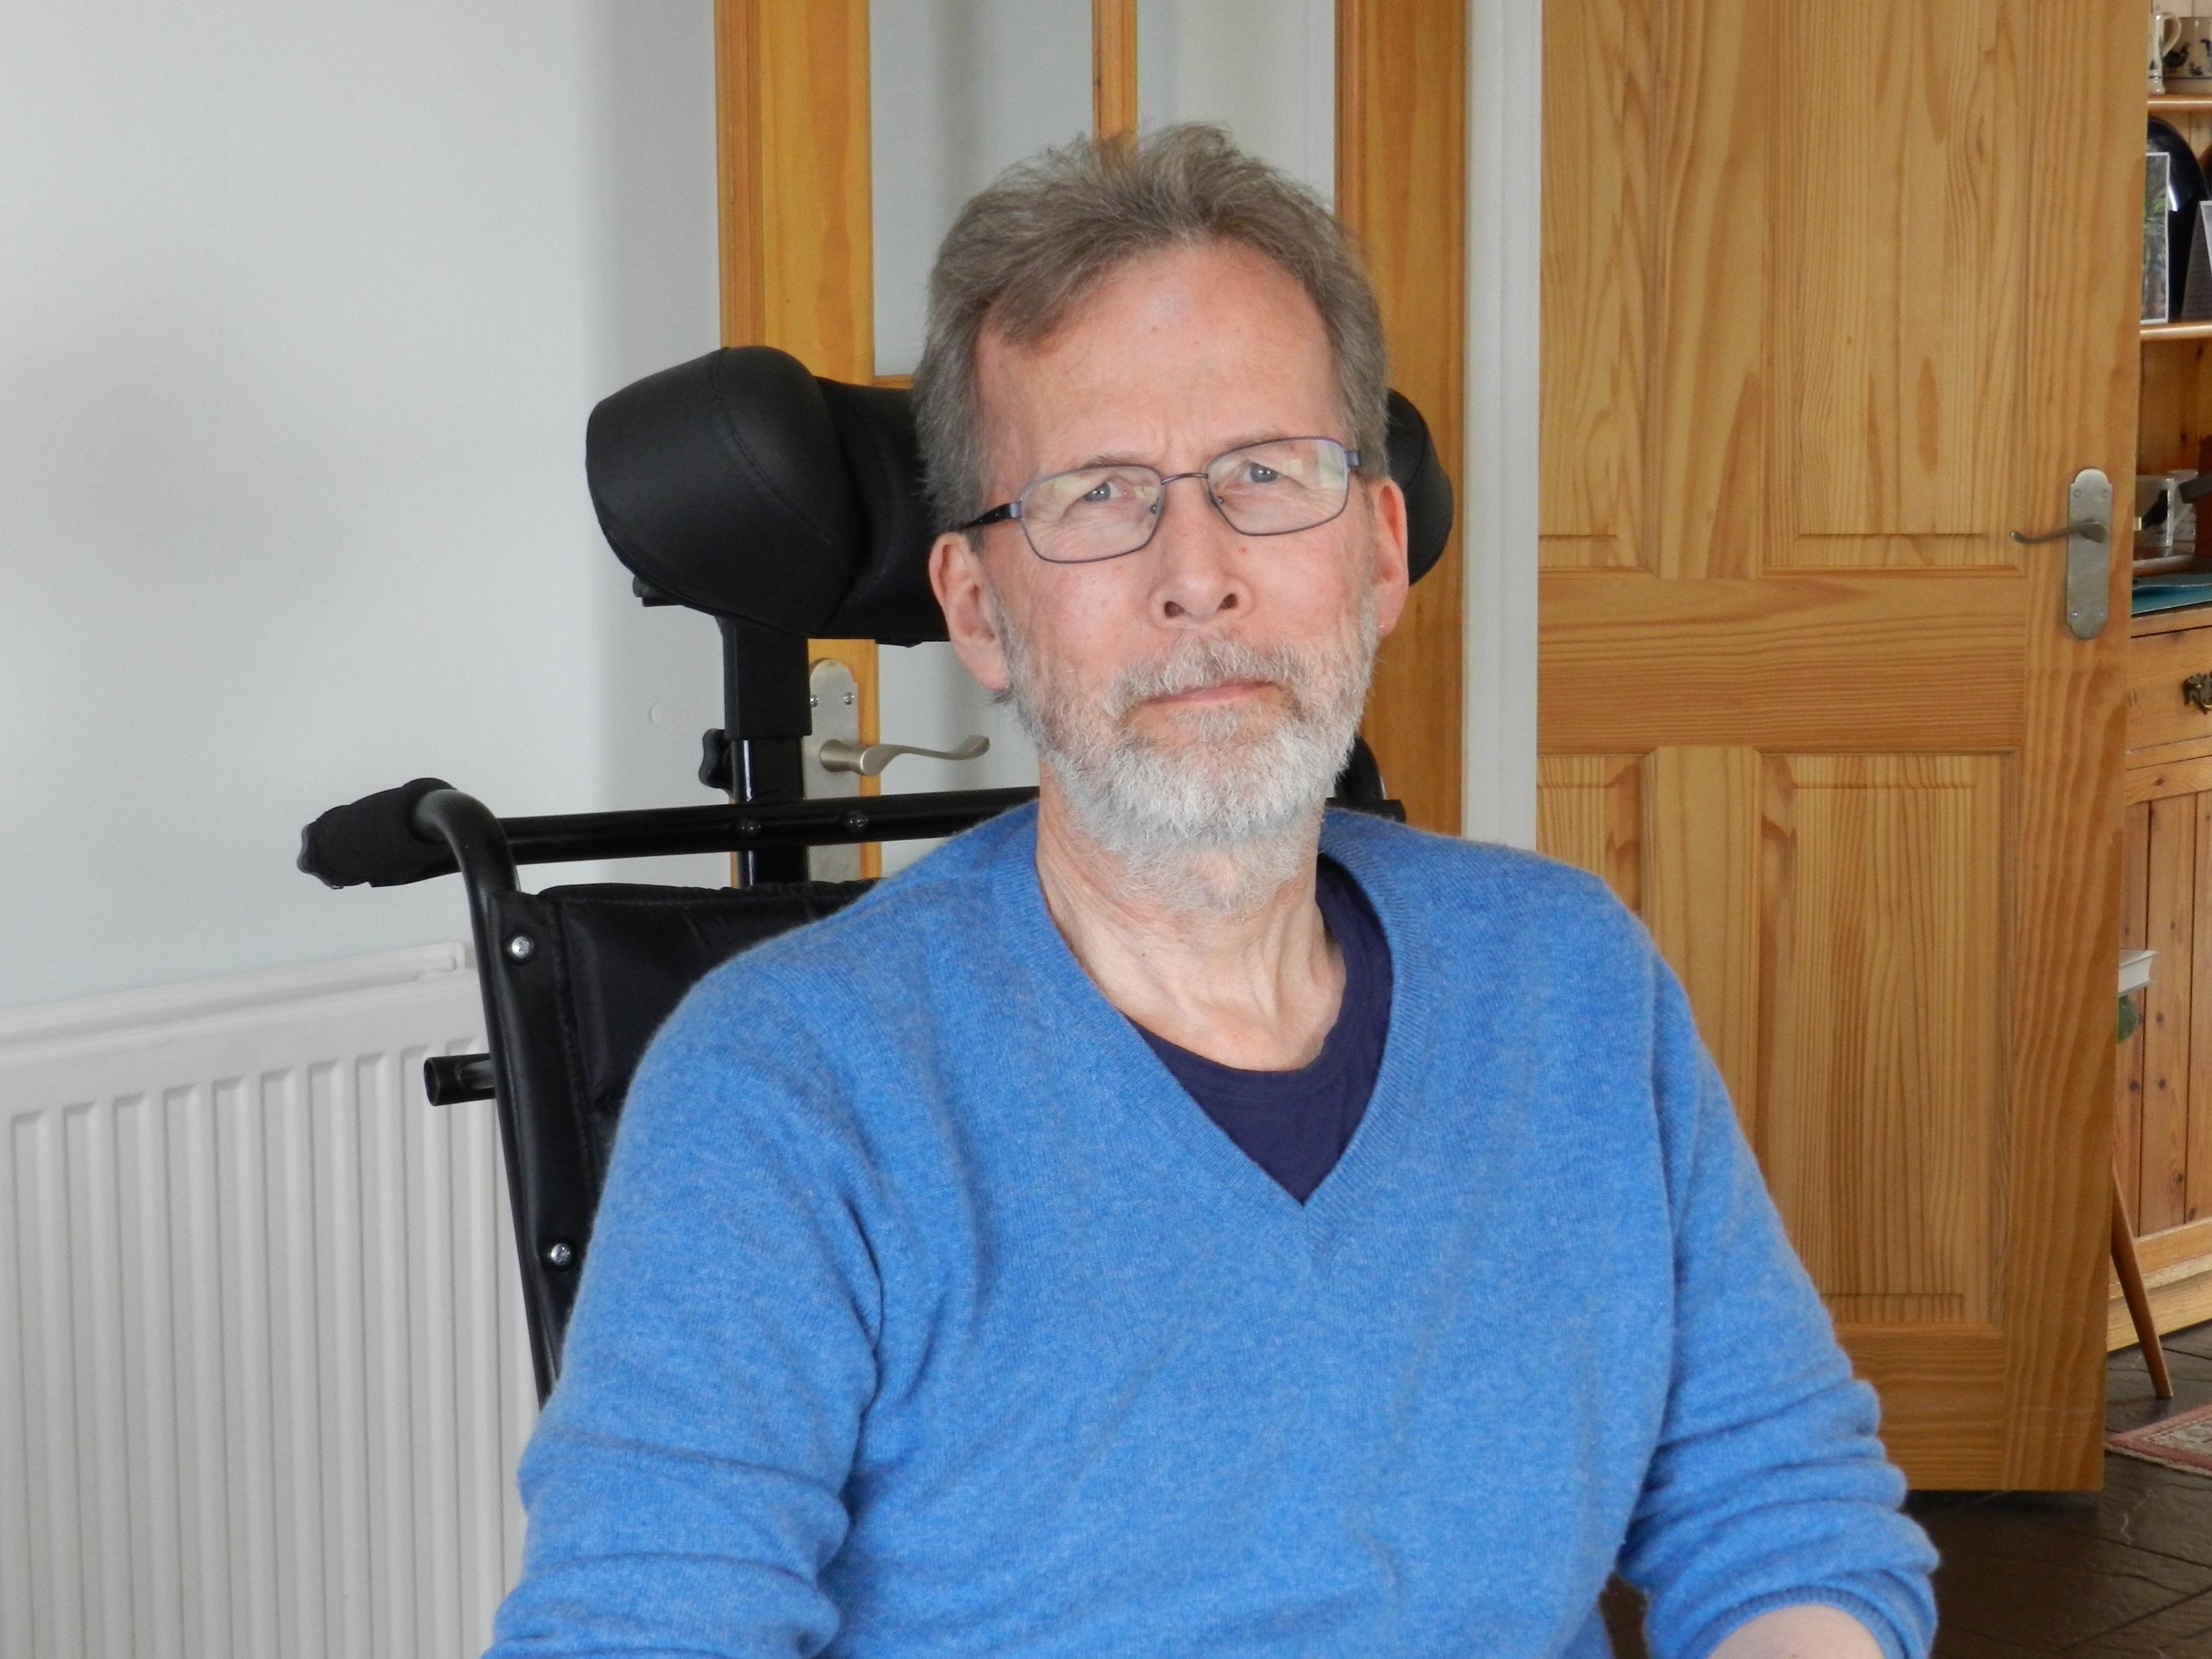 Forres resident Alan Beevers wants to see video-link appointments introduced.